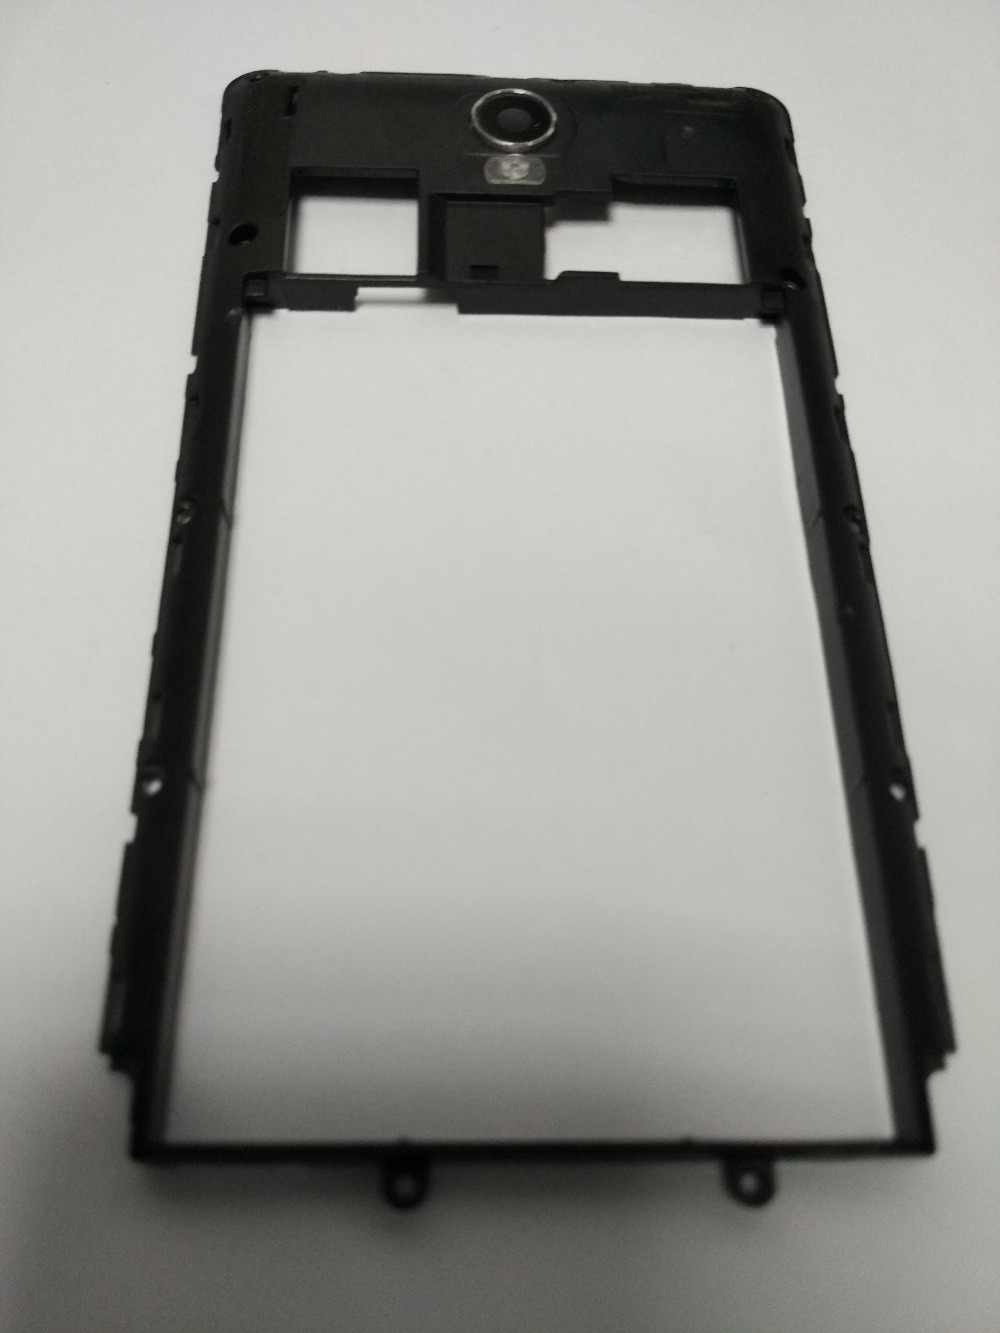 Homtom HT5 Back frame holder repair replacement accessories Hotom HT5 free shipping+Tracking number